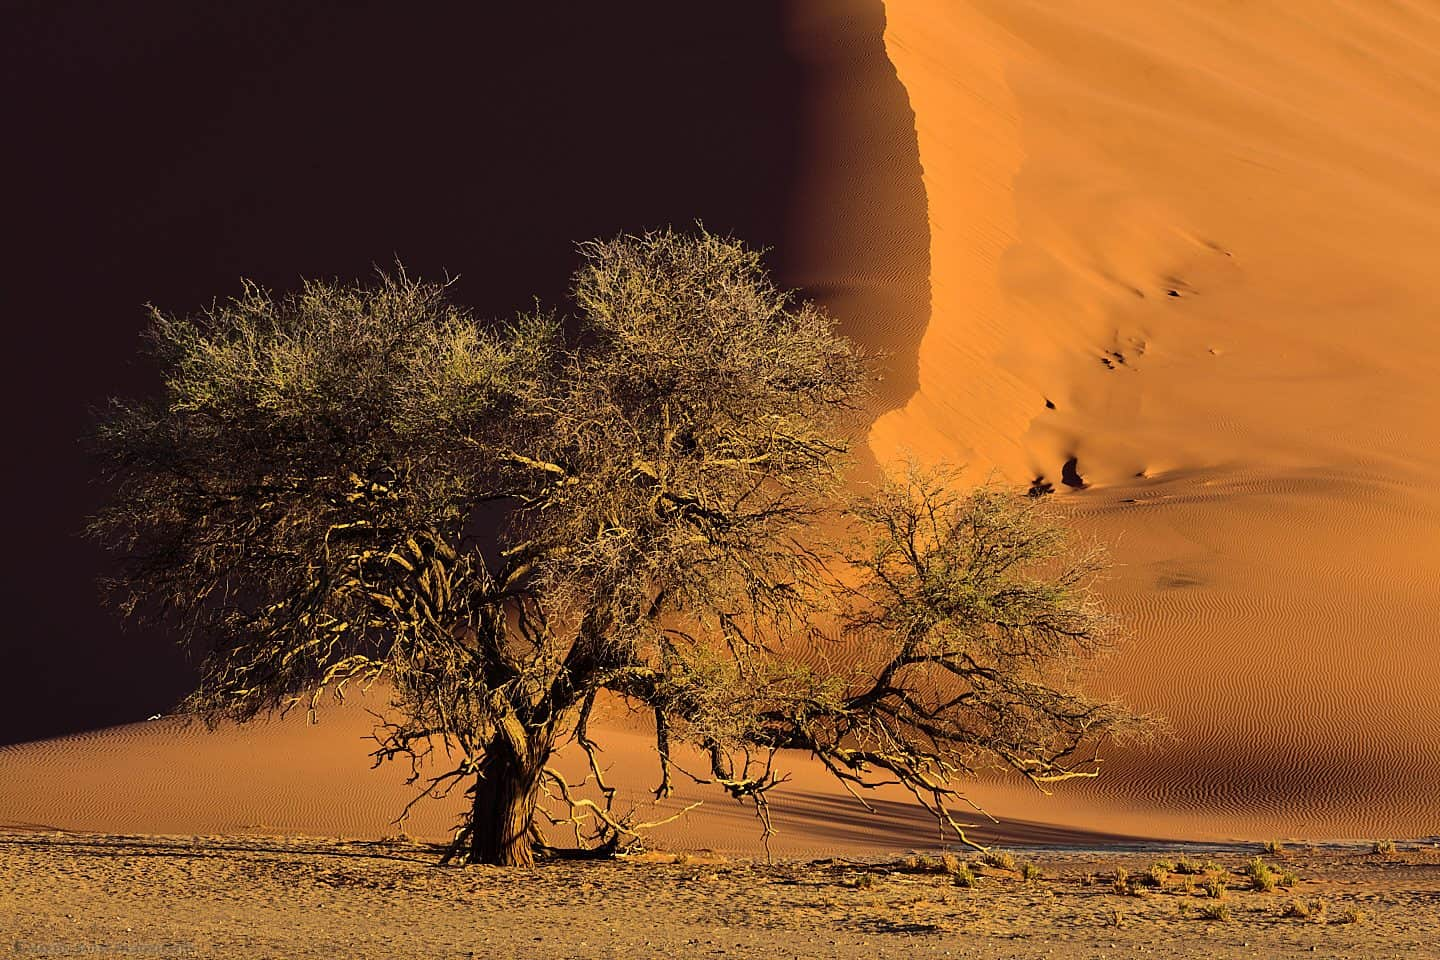 Dune 37 with Camelthorn Tree